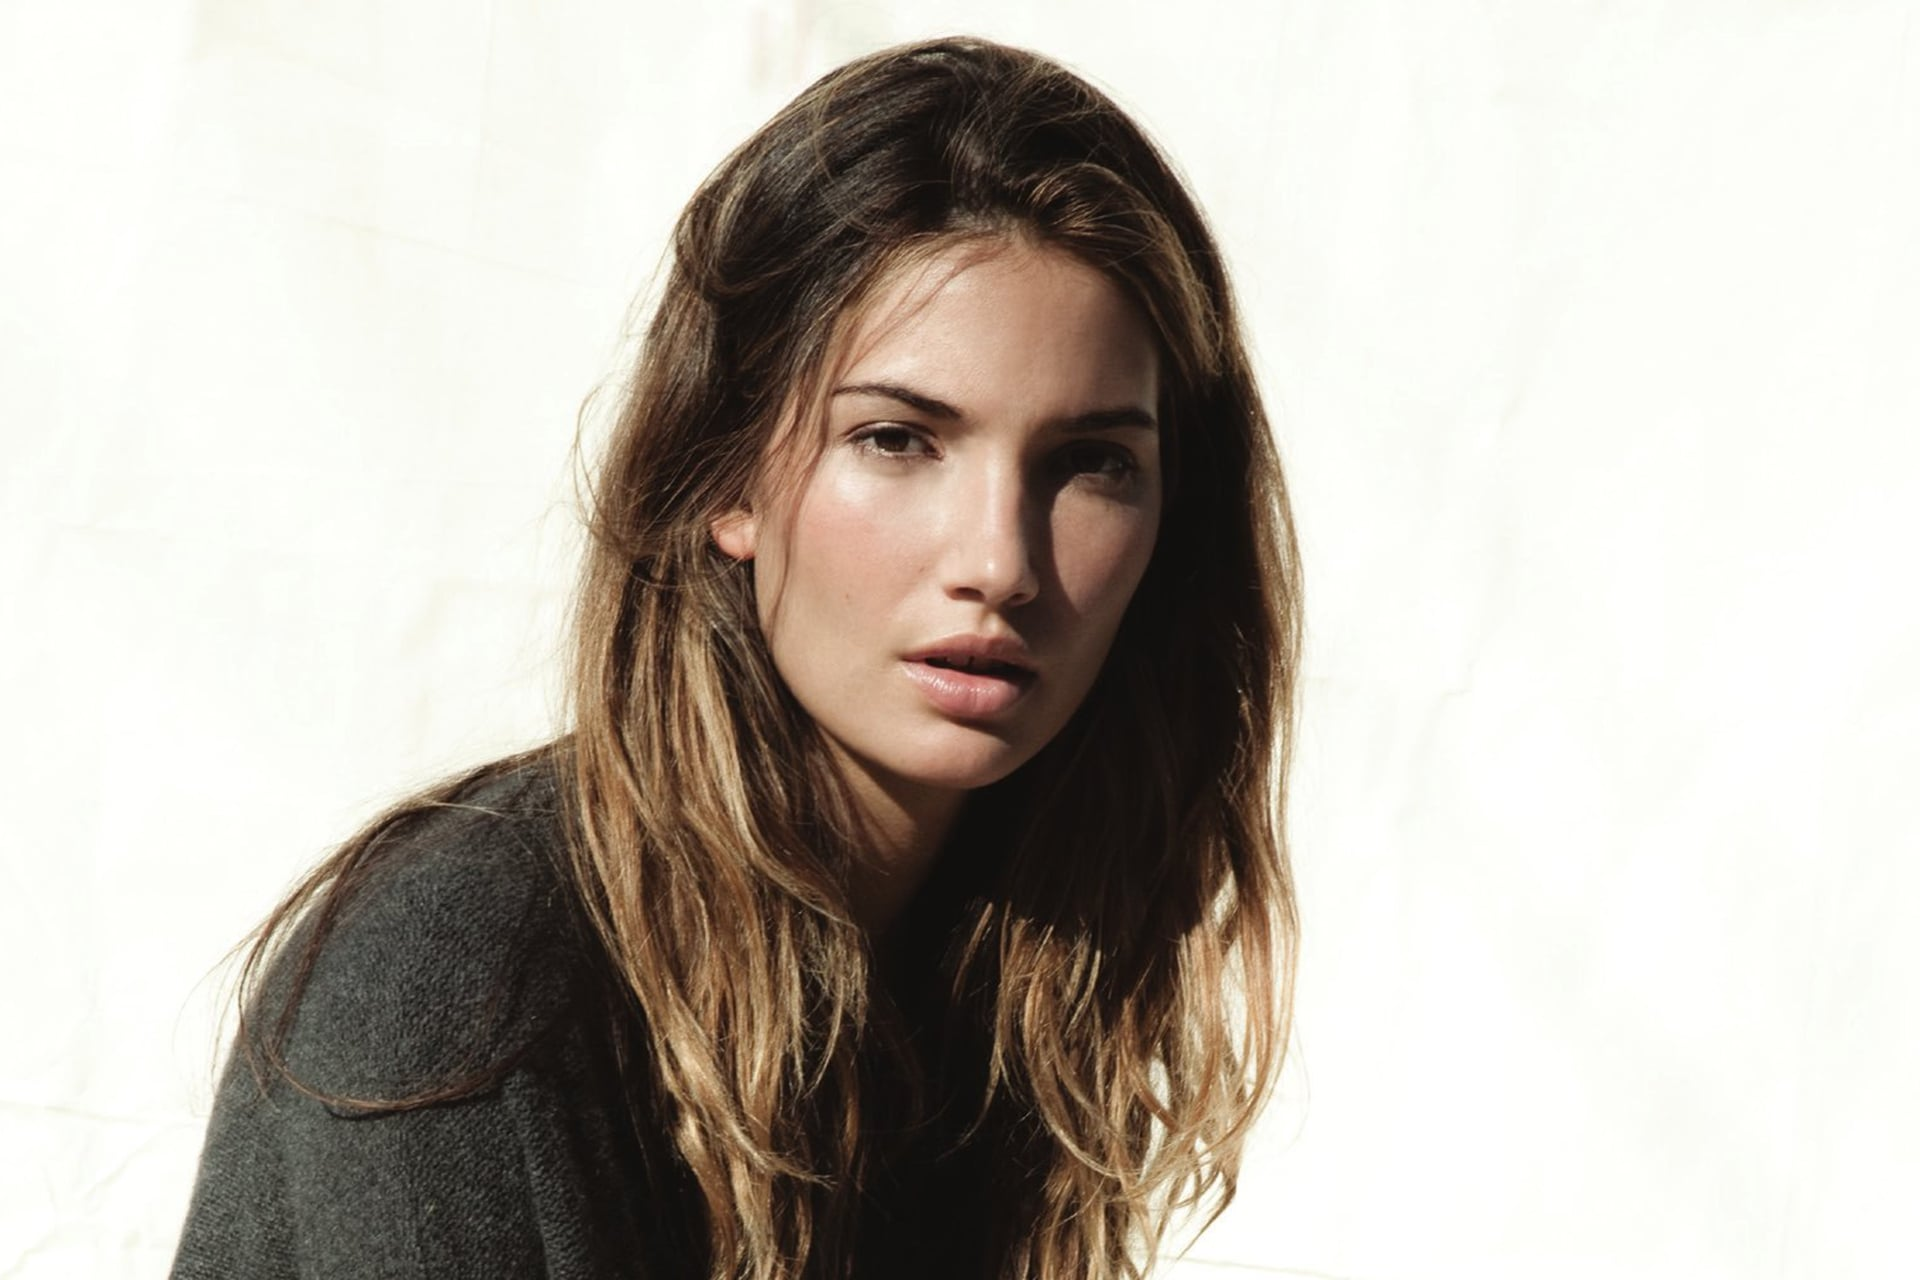 20 Lily Aldridge Wallpapers High Quality Download